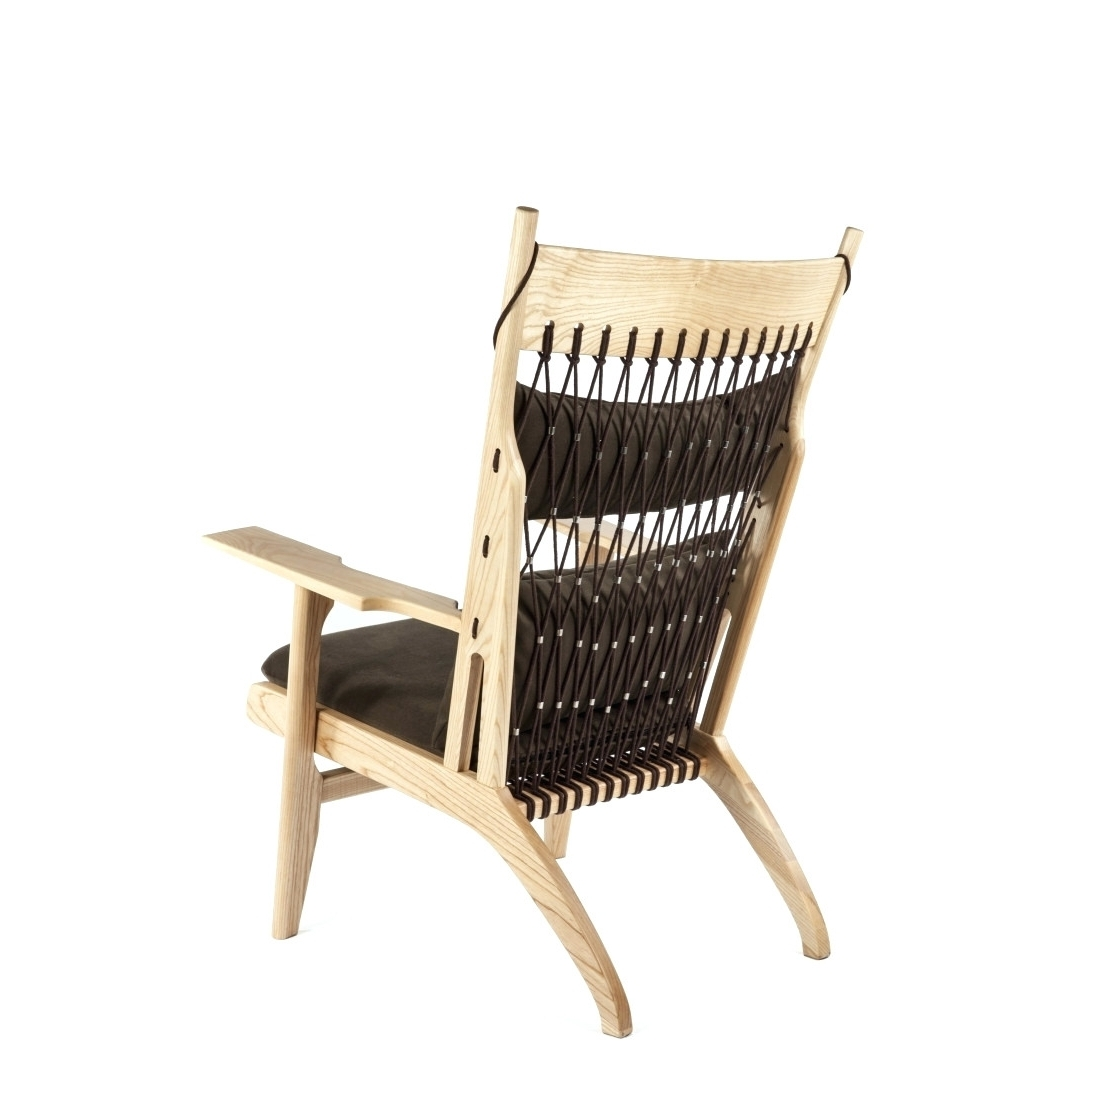 Web Chaise Lounge Lawn Chairs In Well Liked Web Chaise Lounge Lawn Chair • Lounge Chairs Ideas (View 5 of 15)